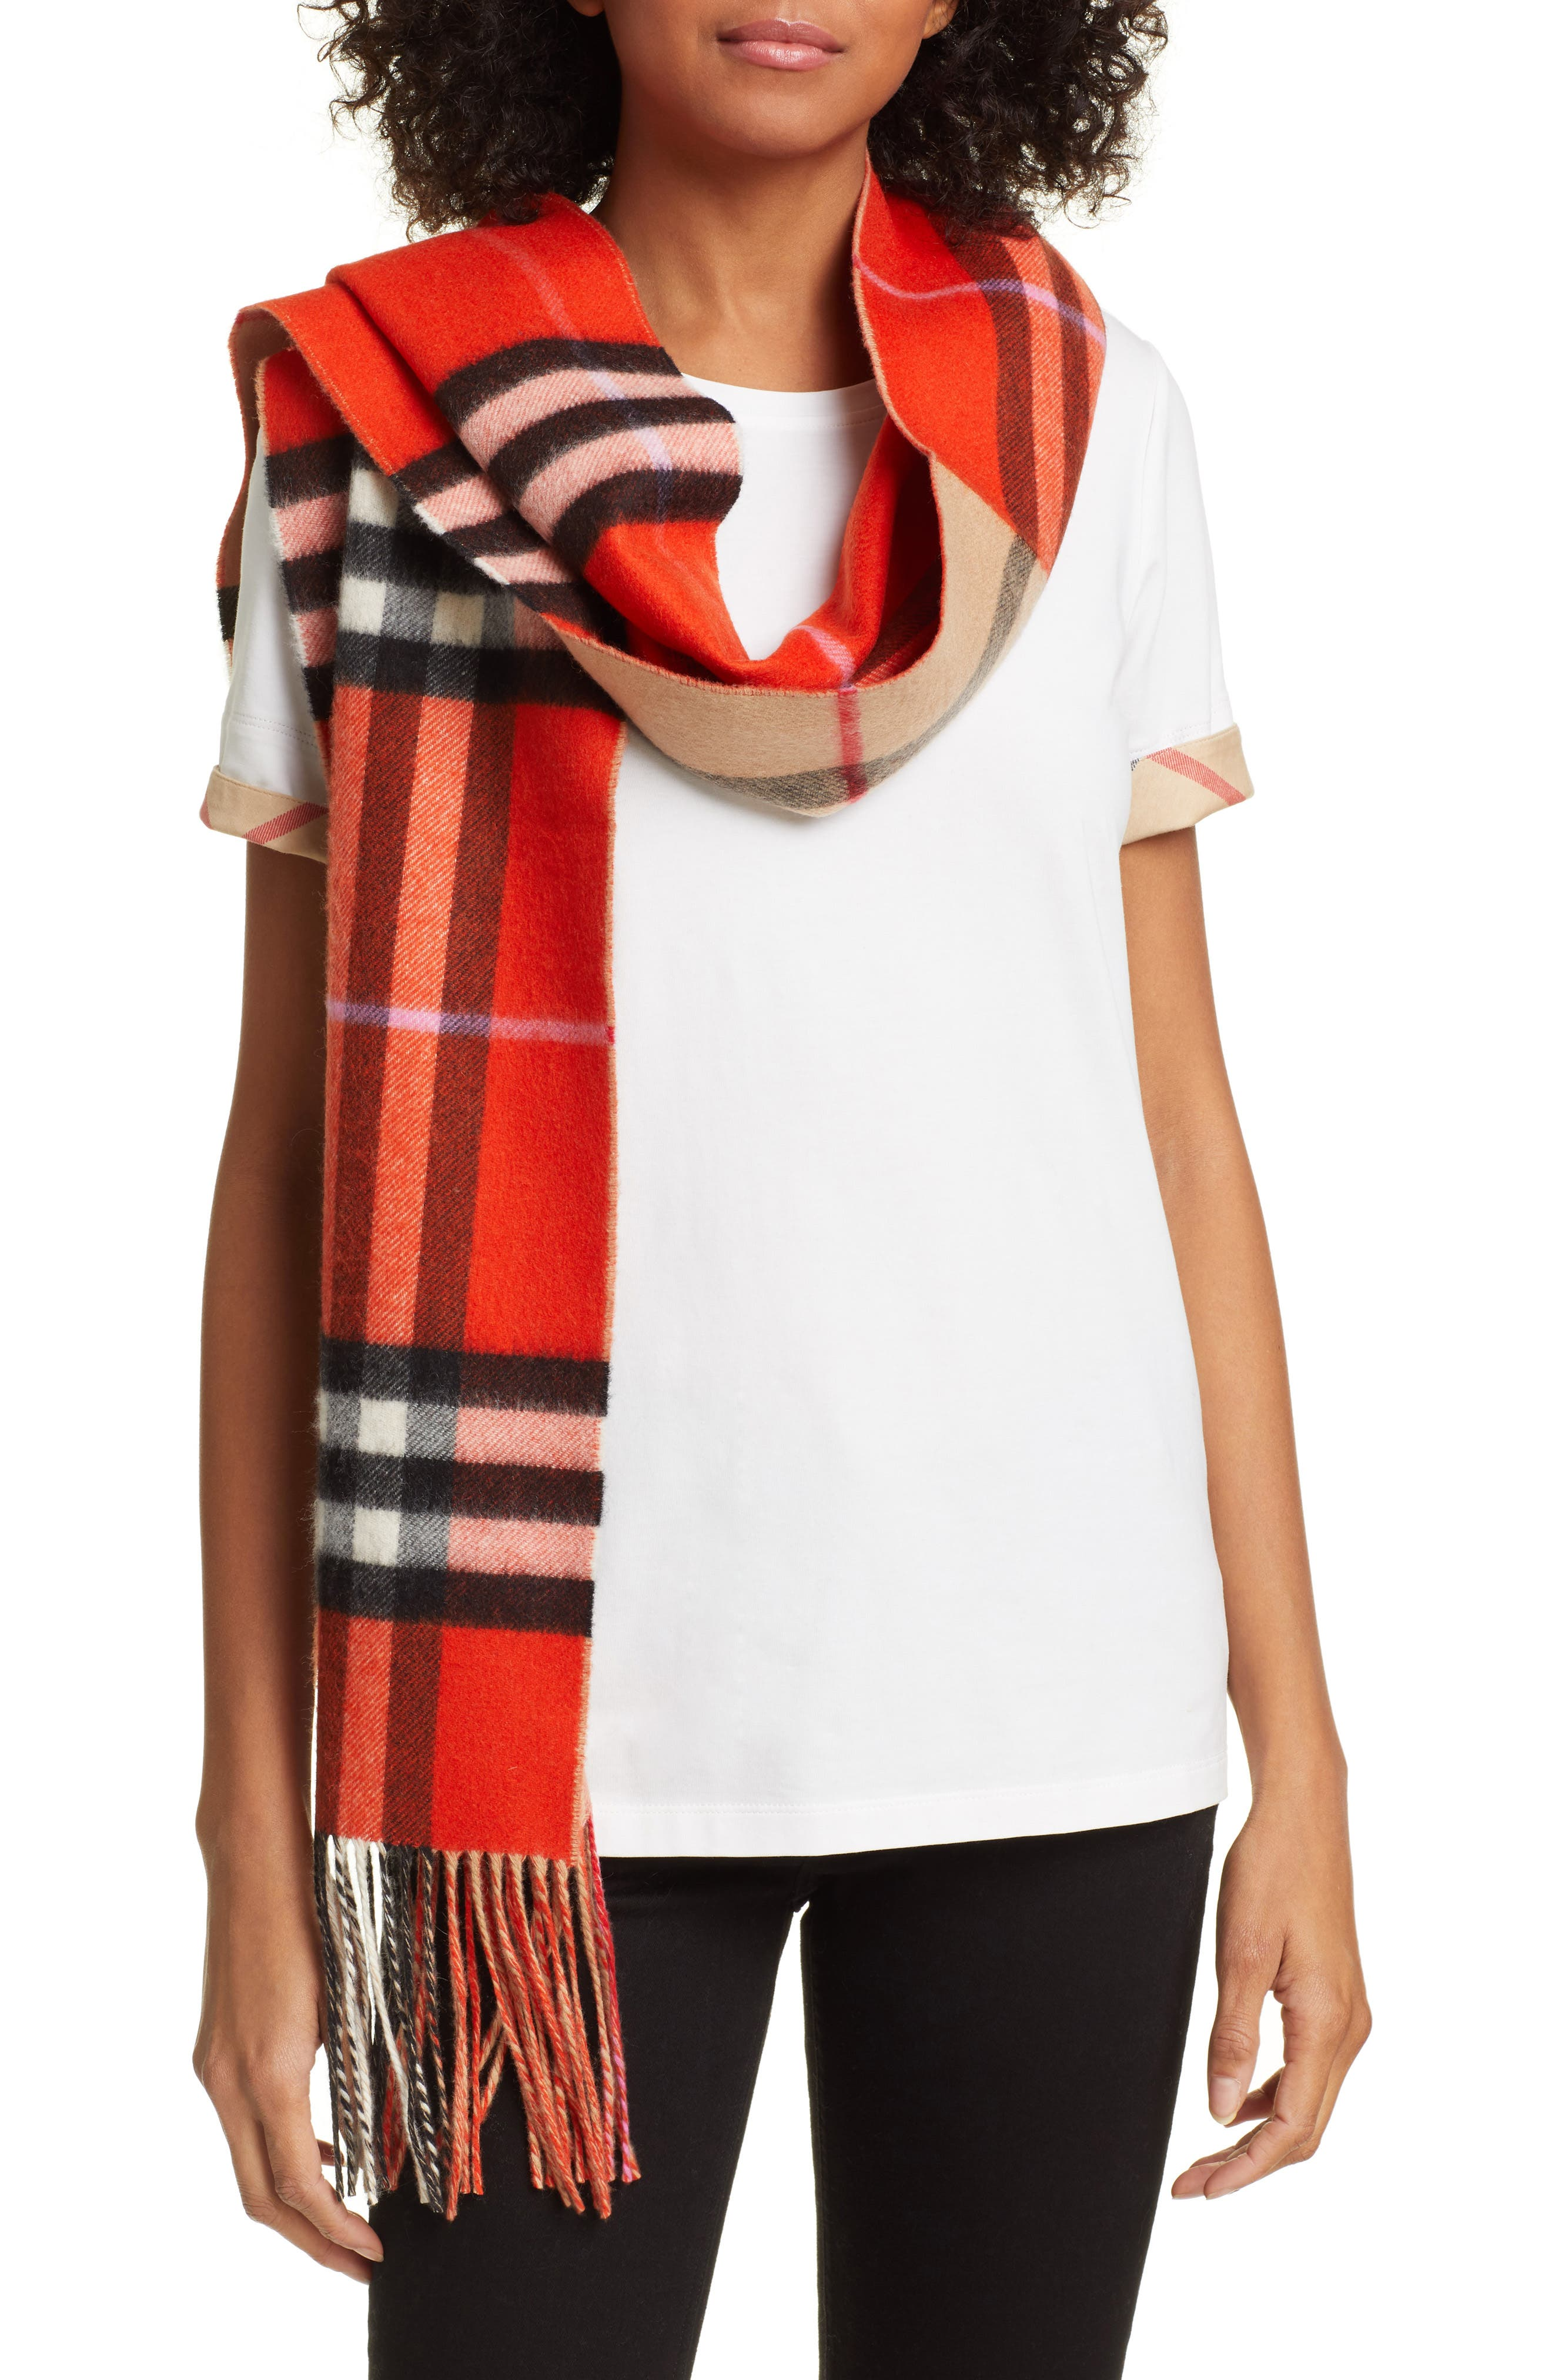 BURBERRY, Giant Check to Check Reversible Cashmere Scarf, Main thumbnail 1, color, BRIGHT ORANGE RED